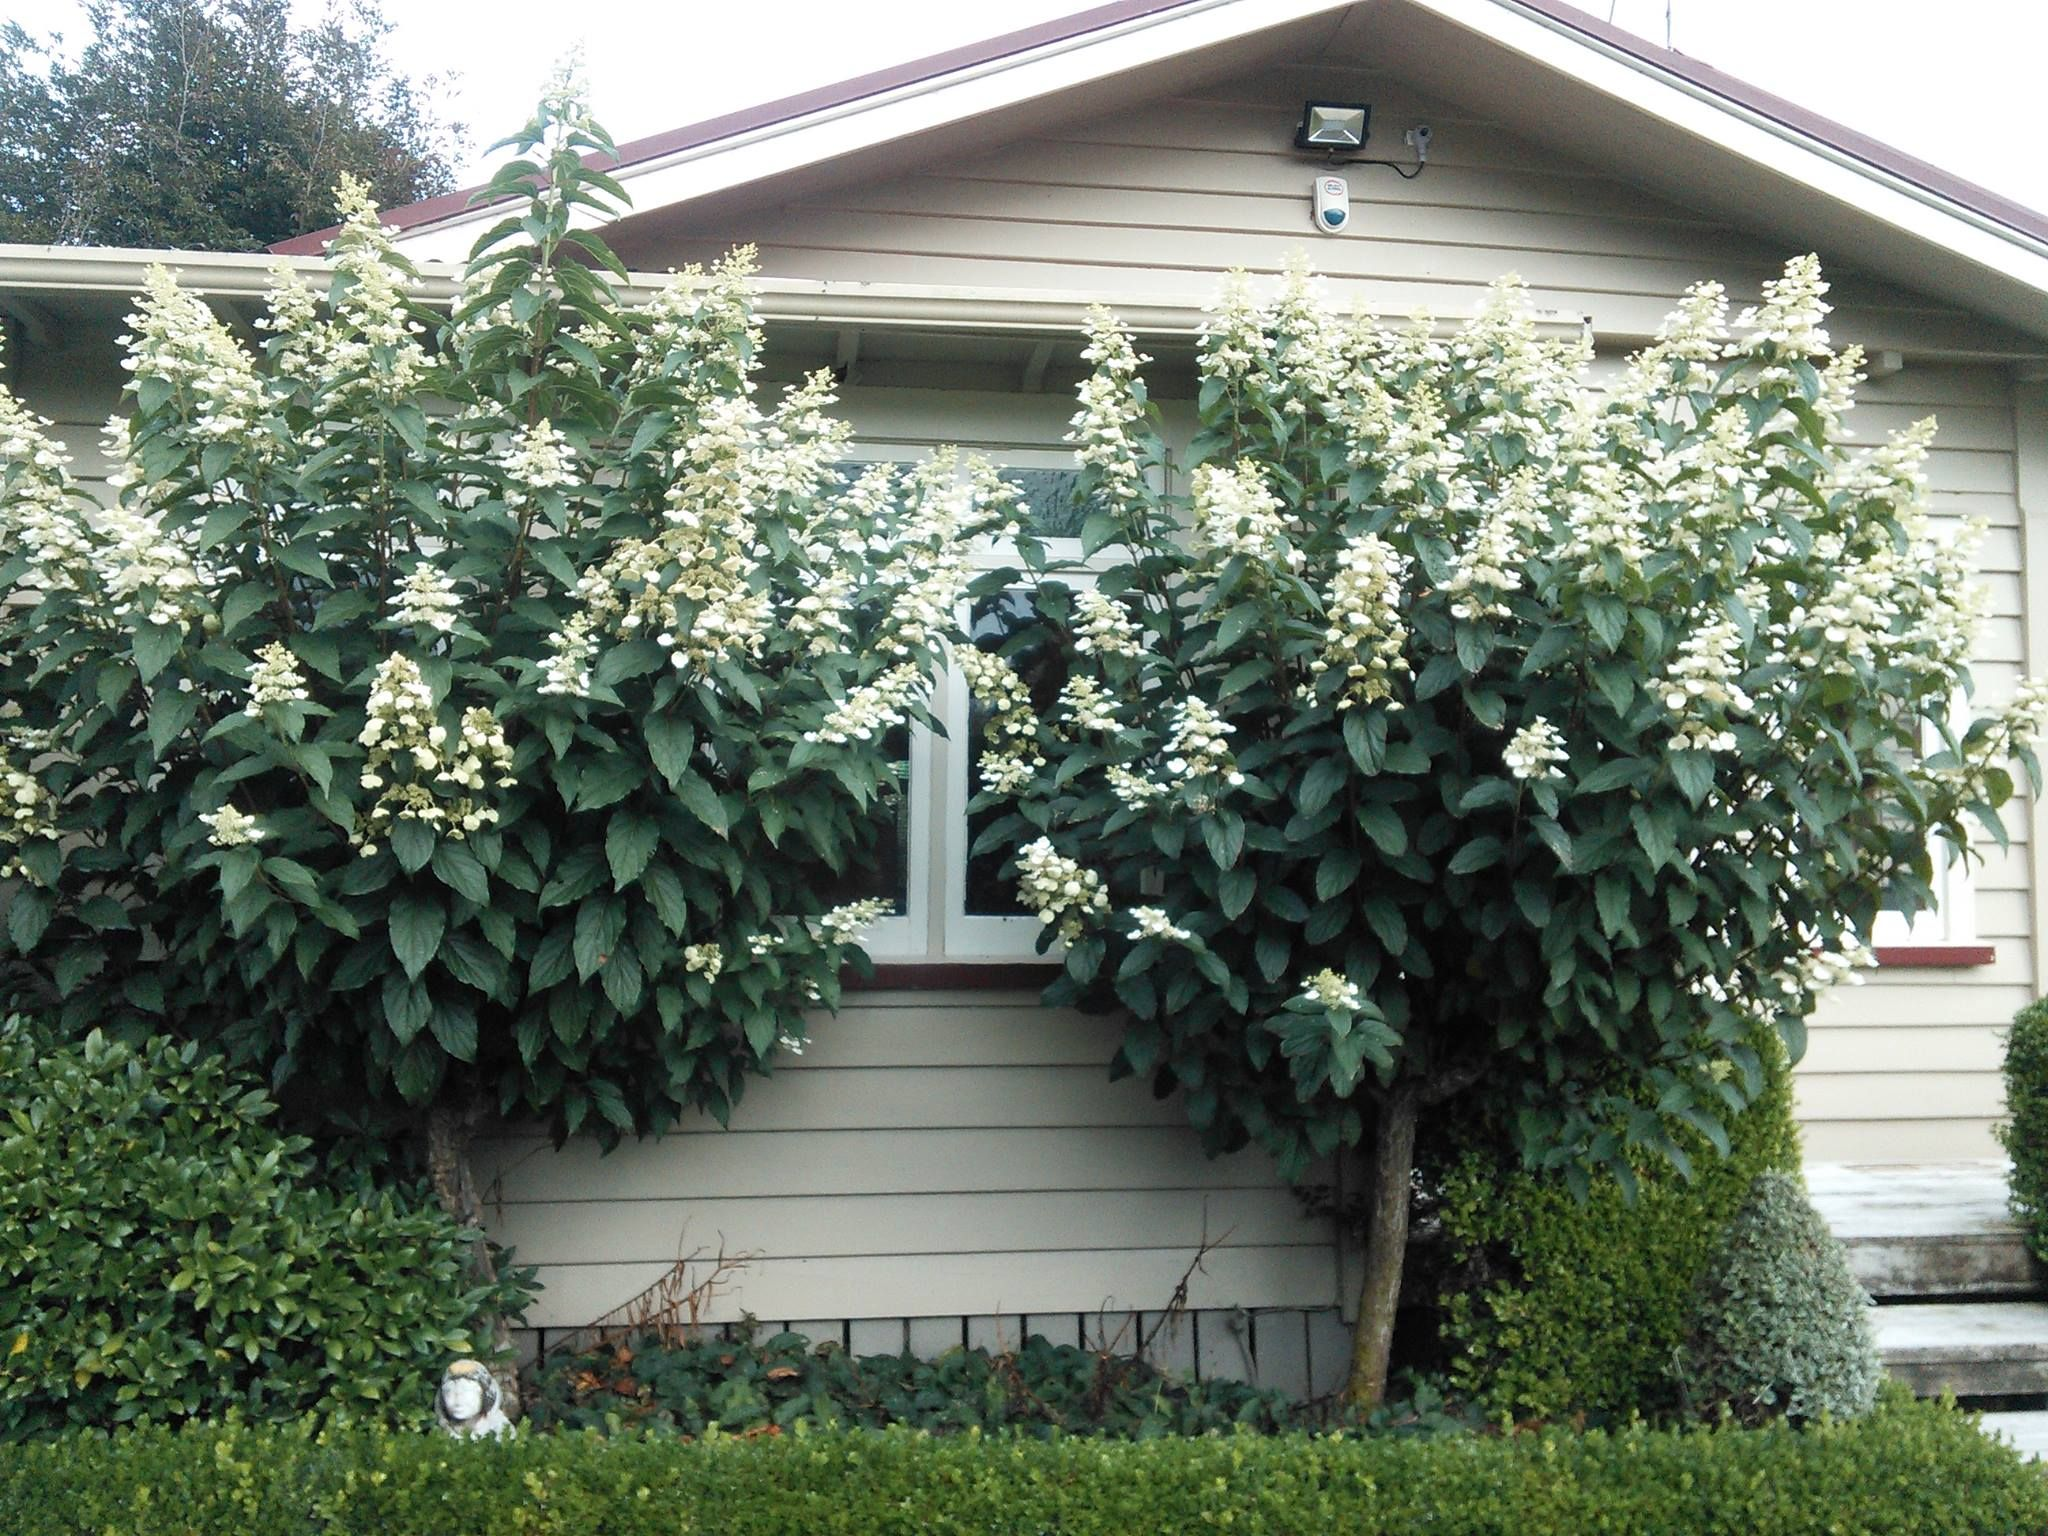 Here Are Some Other Examples Of Hydrangea Paniculata These Hydrangeas Have Such A Wonderful Presence In The Garden Pani Hydrangea Paniculata Hydrangea Plants